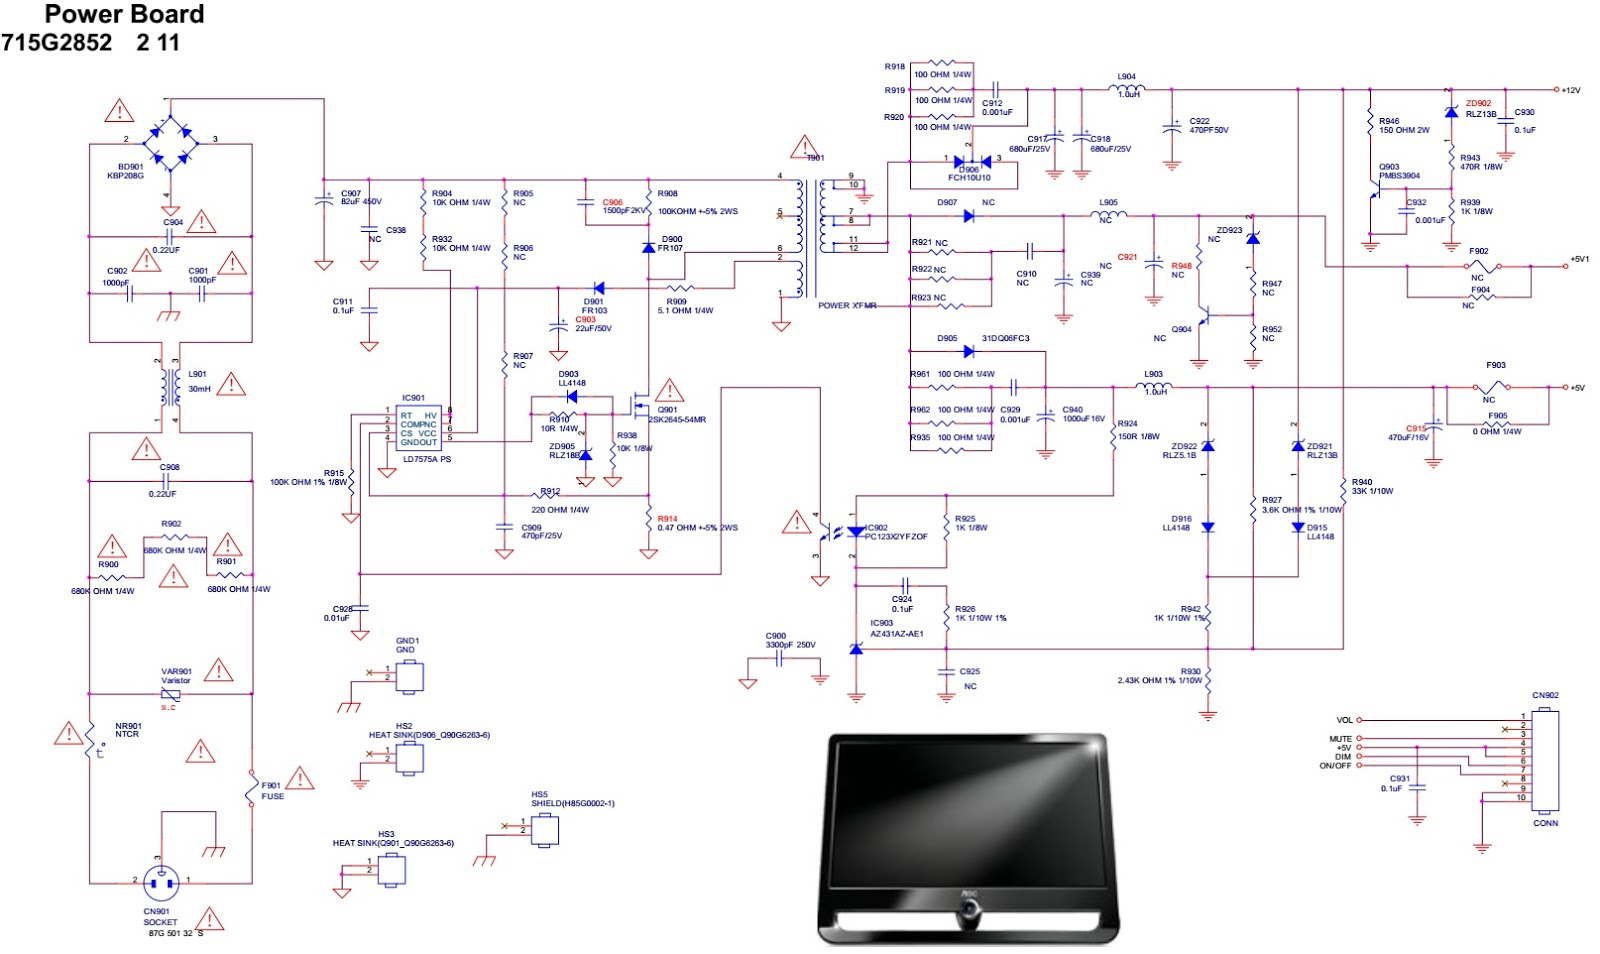 AOC%2BF19s%2B18.5%2Binch%2BLCD%2BMonitor%2B%2BSMPS%2Bschematic aoc f19s 18 5 inch lcd monitor how to update the software, smps